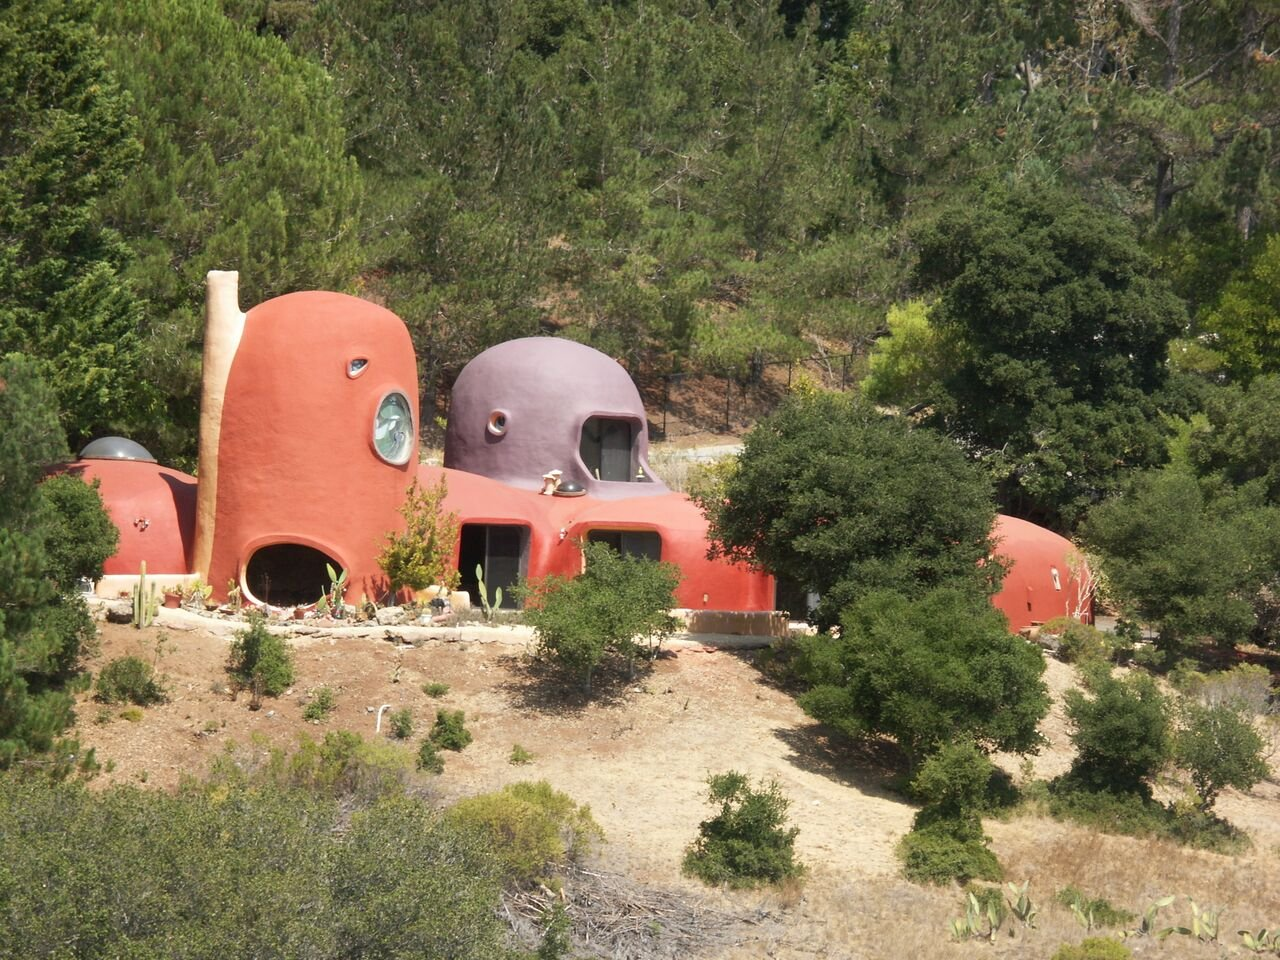 787c4 45%2520berryessa%2520way main This insane Flintstones House is on sale for $4.2 million in California